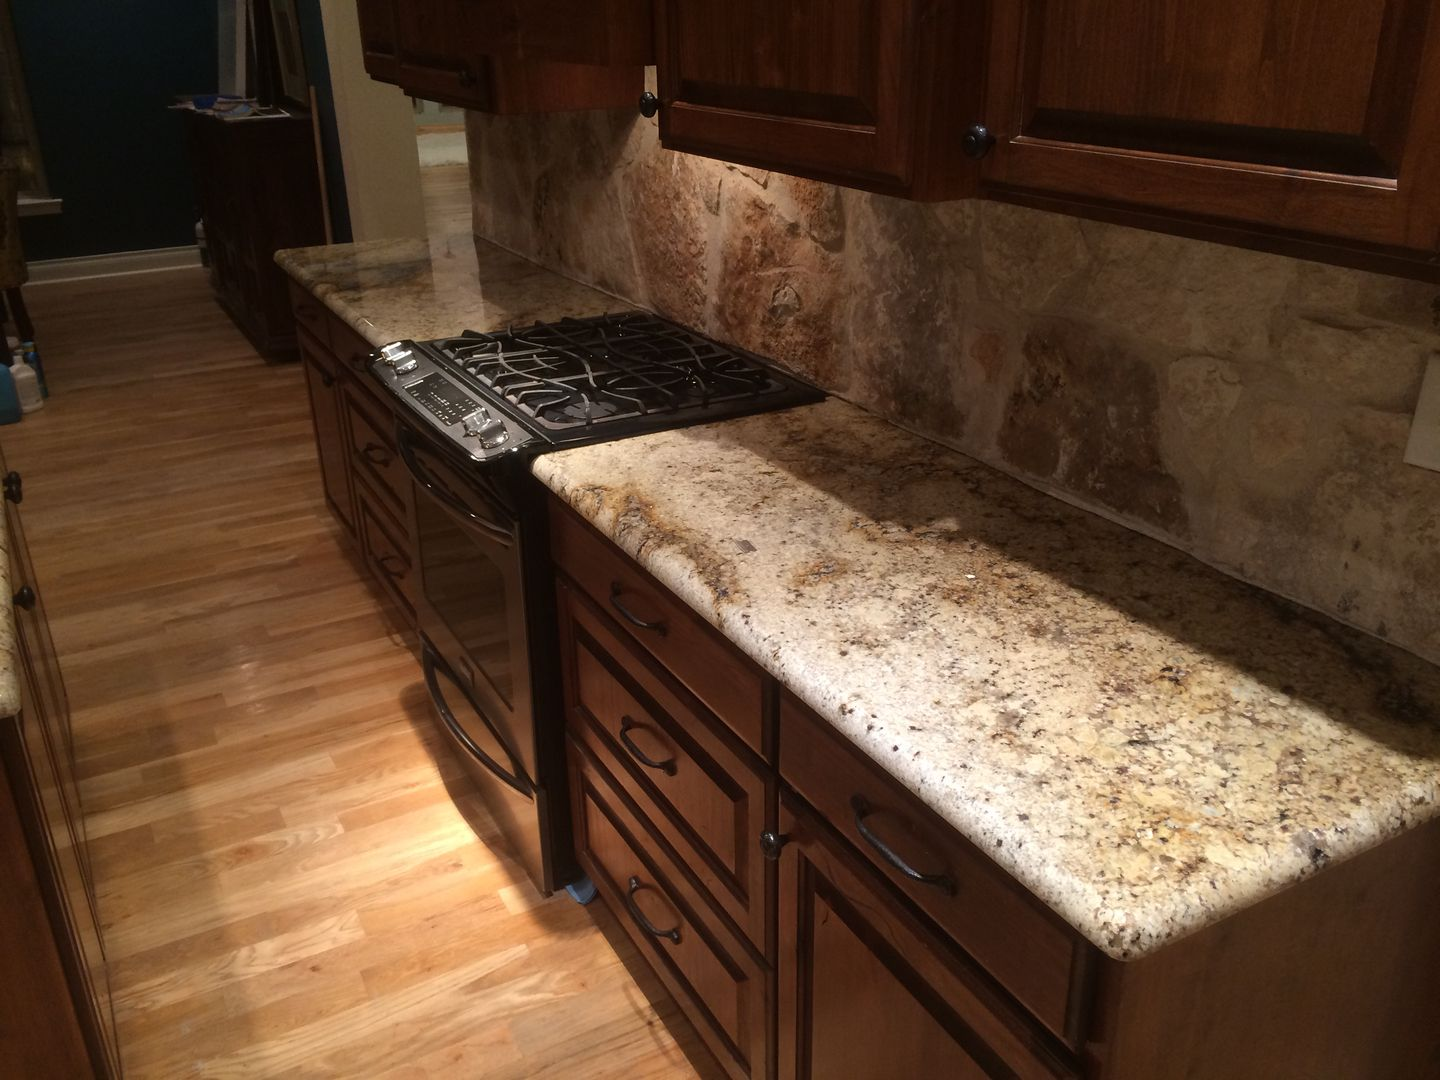 Rustic Kitchen With Granite Countertops : Sienna beige kitchen granite neutral rustic home